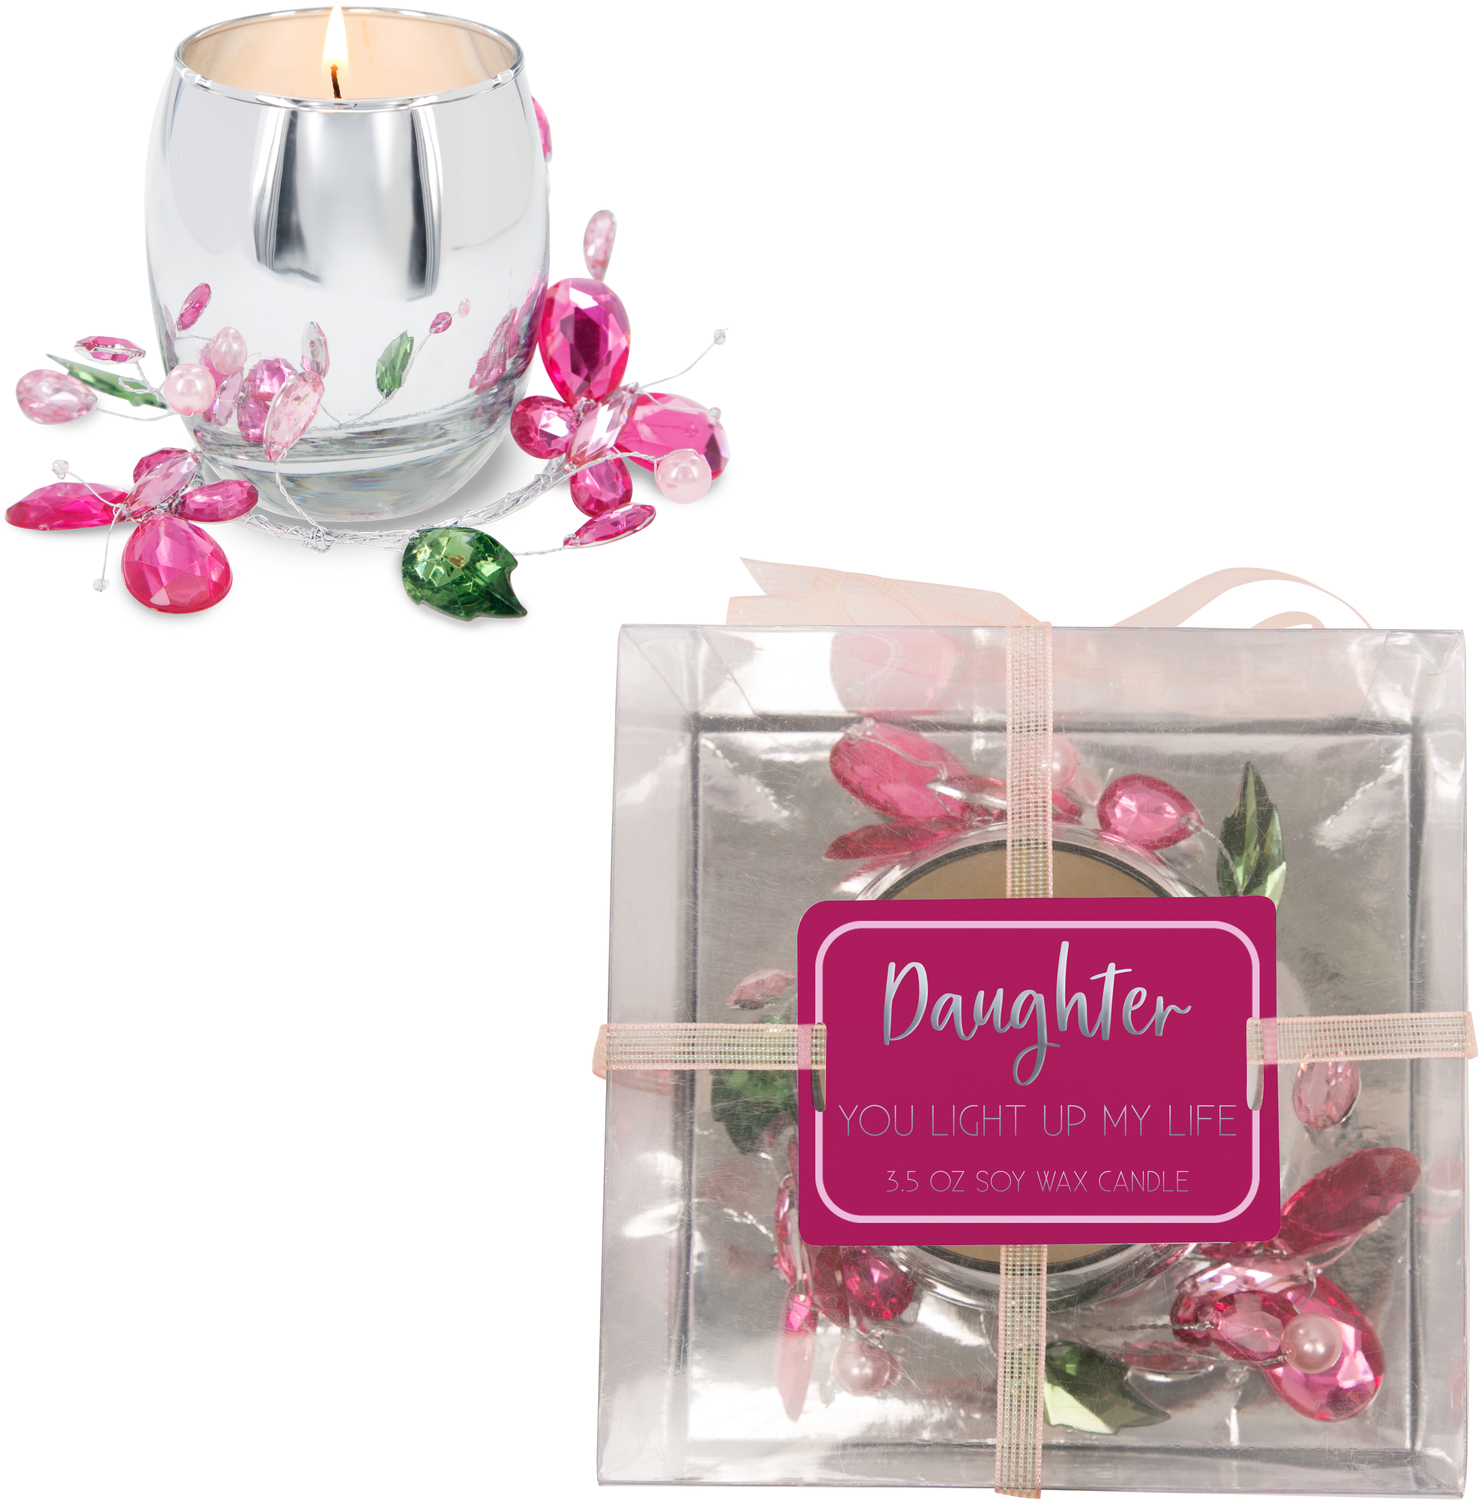 Daughter Pink Butterfly by Reflections of You - Daughter Pink Butterfly - 3.5oz 100% Soy Wax Candle Scent: Jasmine